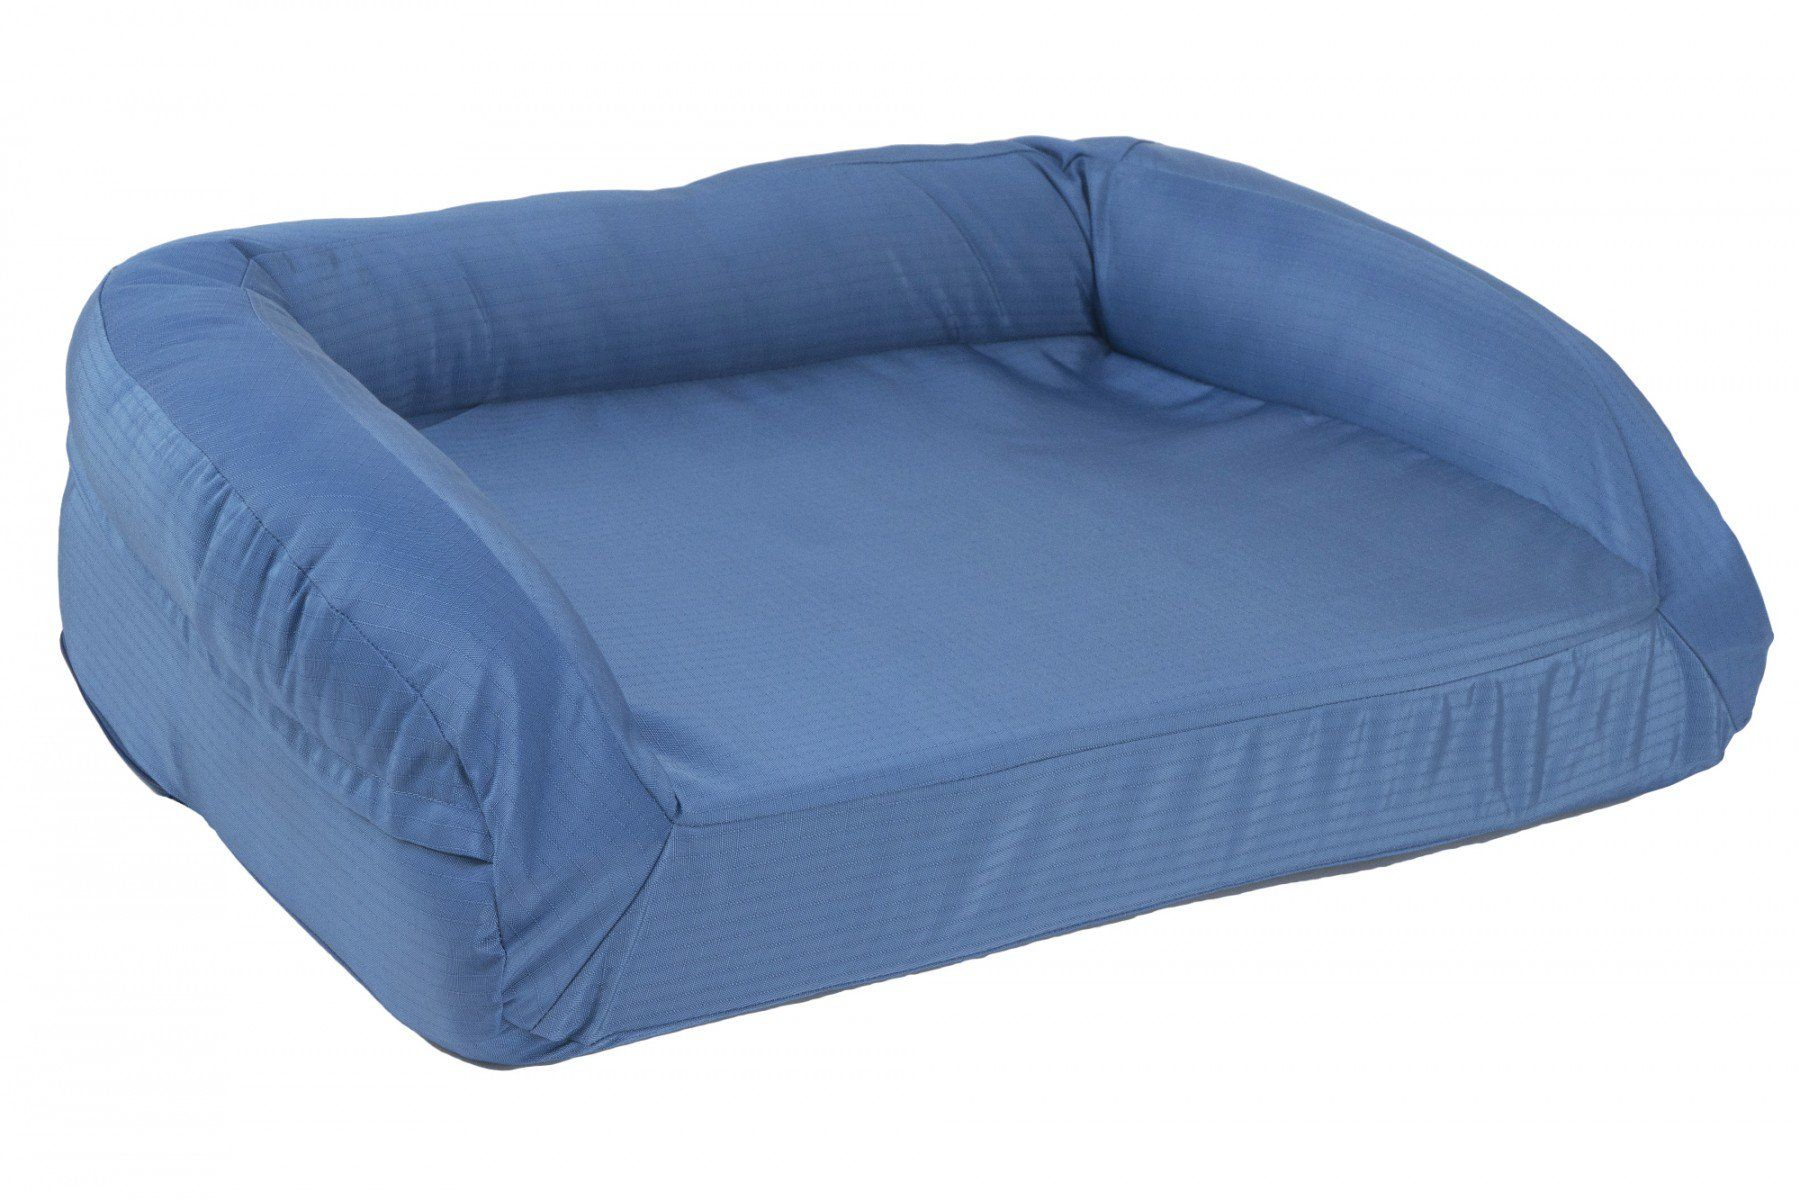 Tough Bolster Orthopedic Dog Bed™ Nest dog bed, Tough